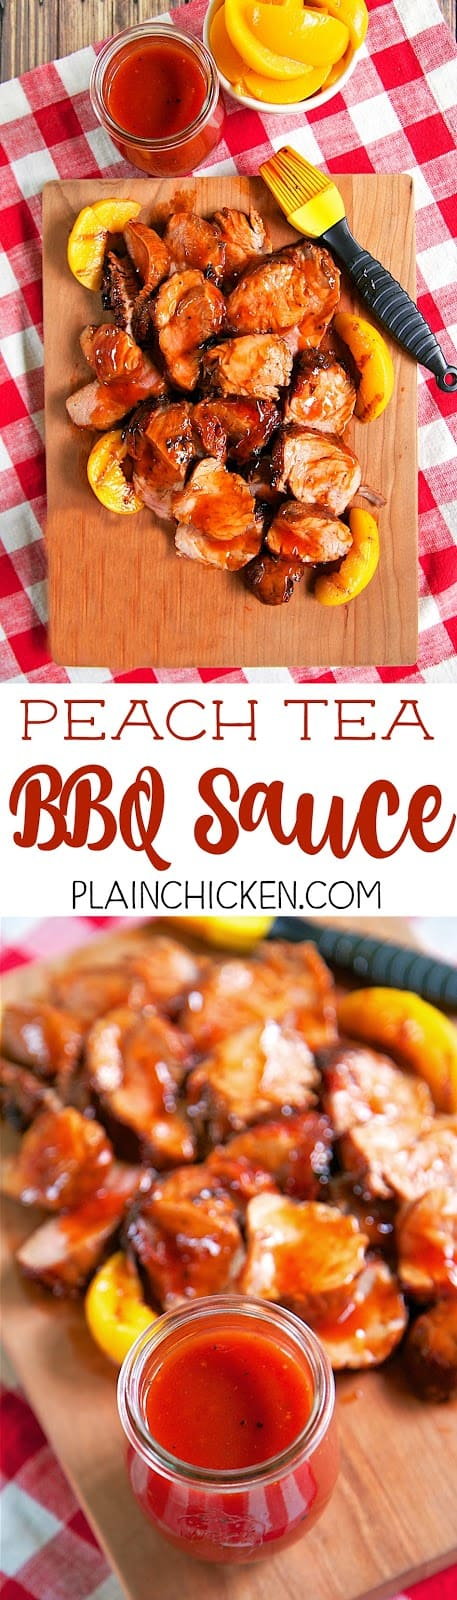 Peach Tea BBQ Sauce - quick homemade BBQ sauce that is ready in 10 minutes! Peach tea , ketchup, cider vinegar, dijon mustard, brown sugar, salt and pepper. BEST BBQ sauce I've ever eaten! LOVE the peach tea! Crazy good! Great on pork, chicken, ribs and smoked sausage.